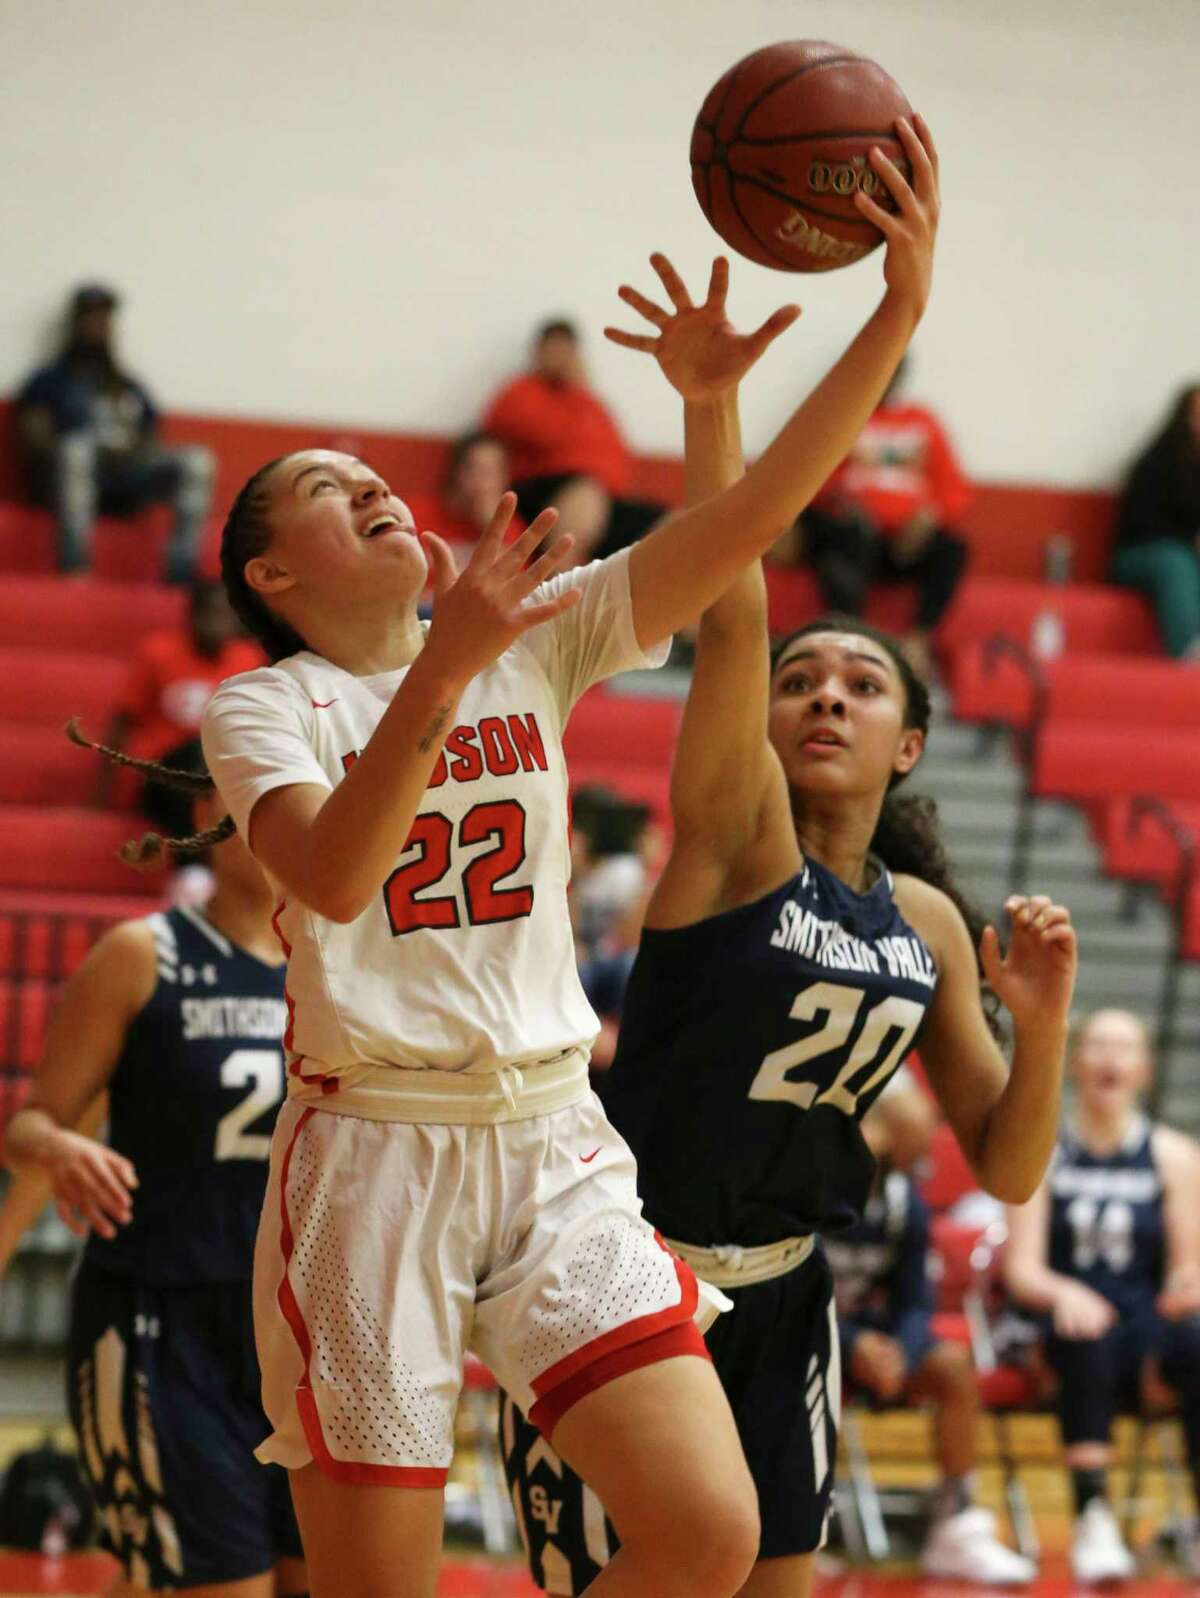 Judson's Kyra White (22) goes up for shot against Smithson Valley's Anika McGarity (20) in 26-6A girls basketball at Judson on Tuesday, Jan. 8, 2019. The Rockets defeated the Rangers, 64-48, to stay undefeated in district play. The win also marked the 300th victory for Judson coach Triva Corrales. (Kin Man Hui/San Antonio Express-News)